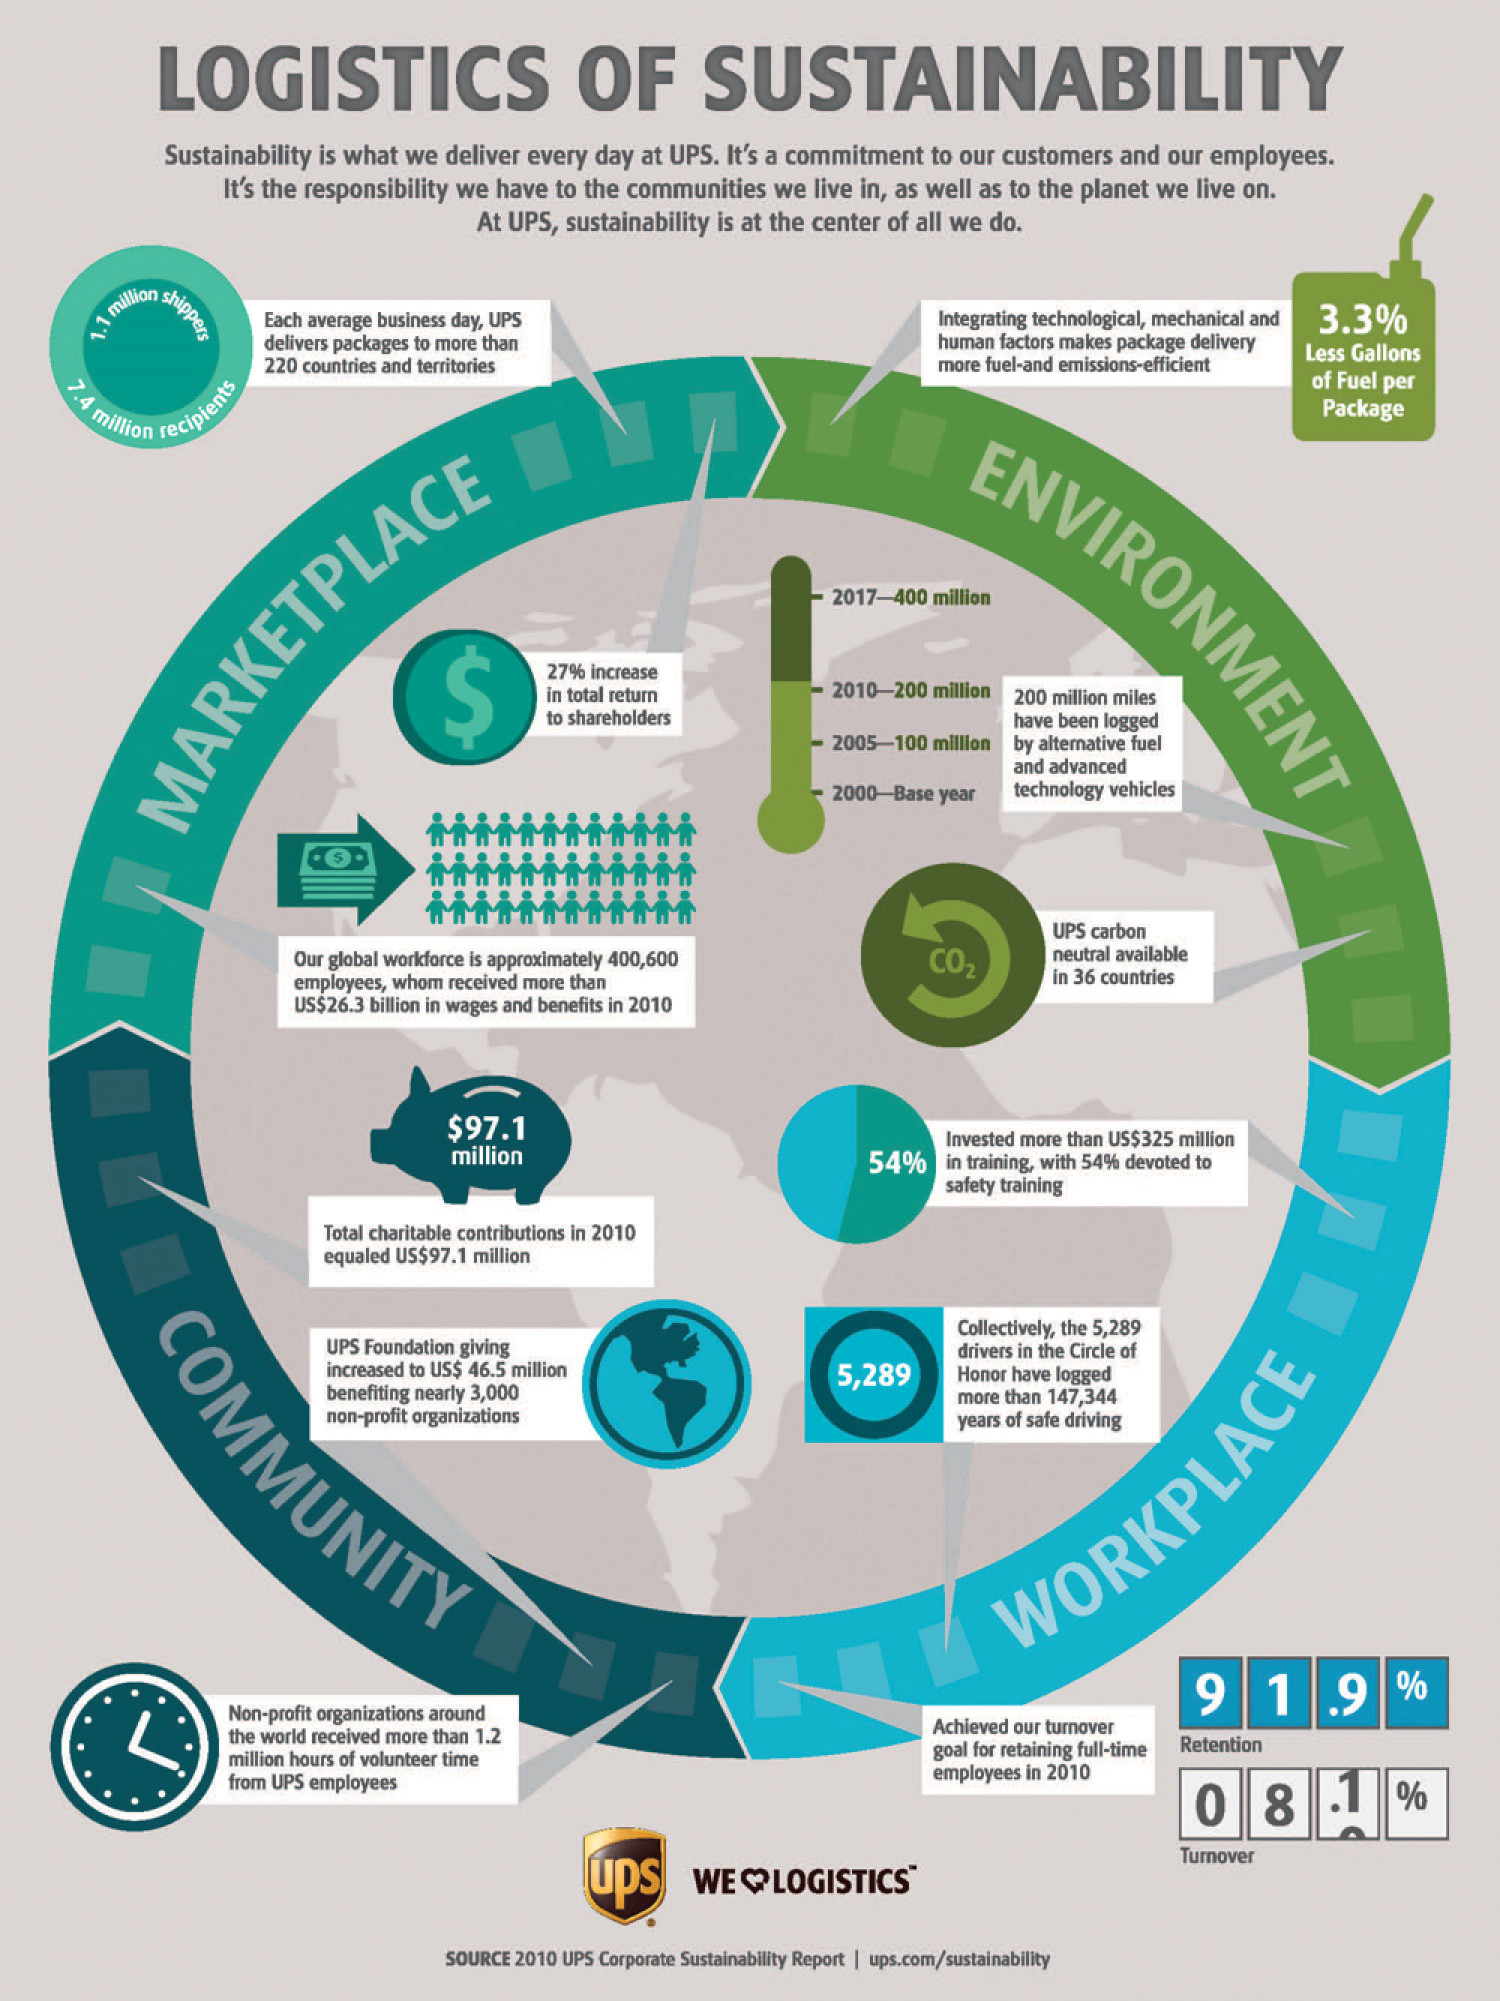 Logistics of Sustainability Infographic